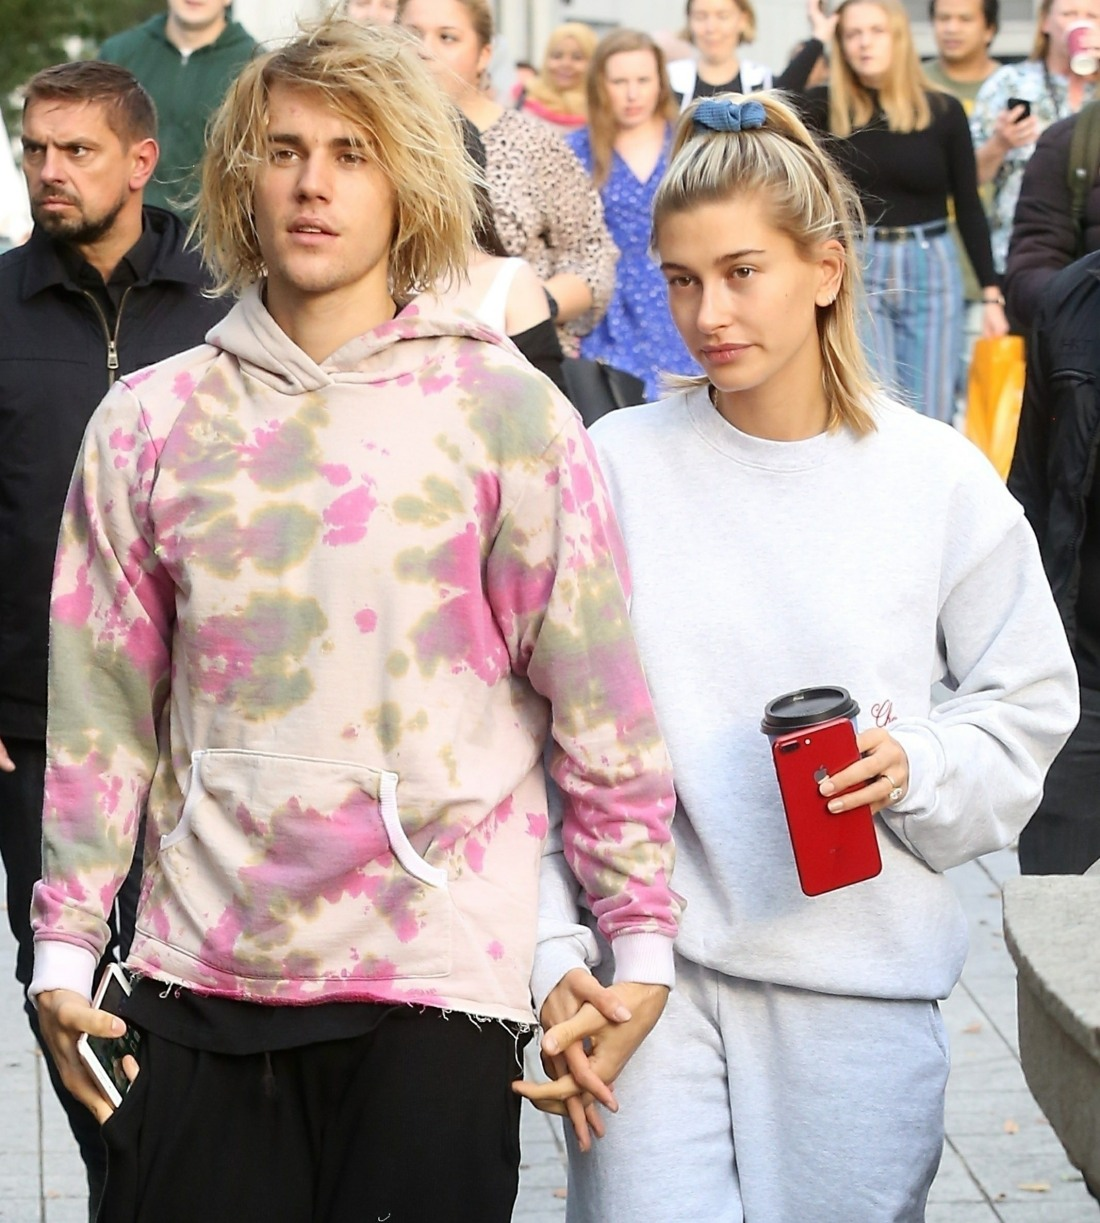 Justin Bieber & Hailey Baldwin have lawyered up to work on their prenup